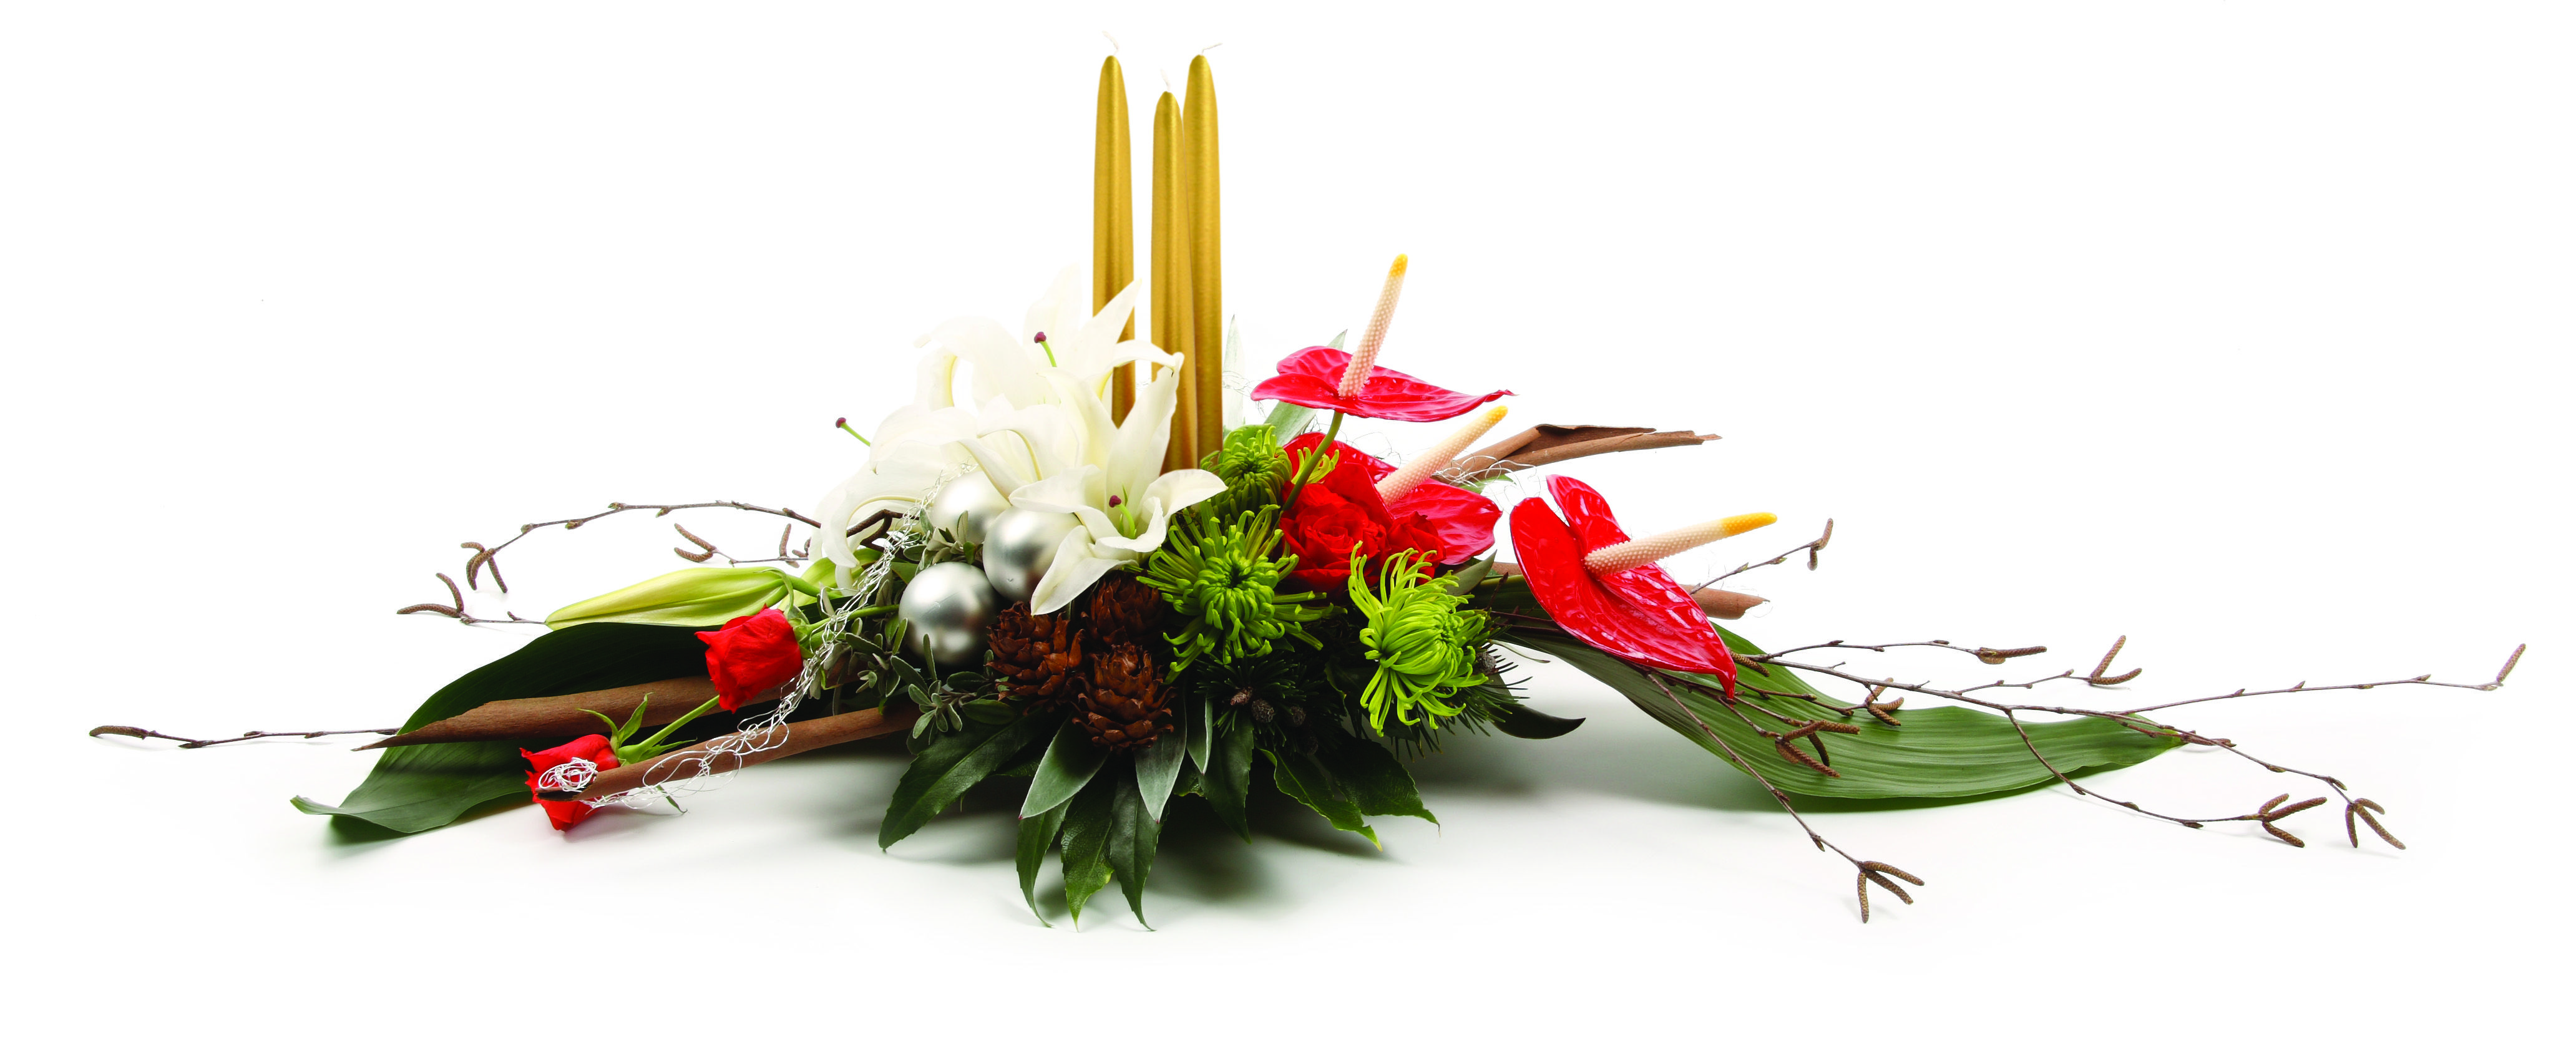 Christmas Table Arrangements Trendy Christmas Table Arrangements Ideas With White And Yellow Christmas Floral Designs Christmas Floral Xmas Table Decorations